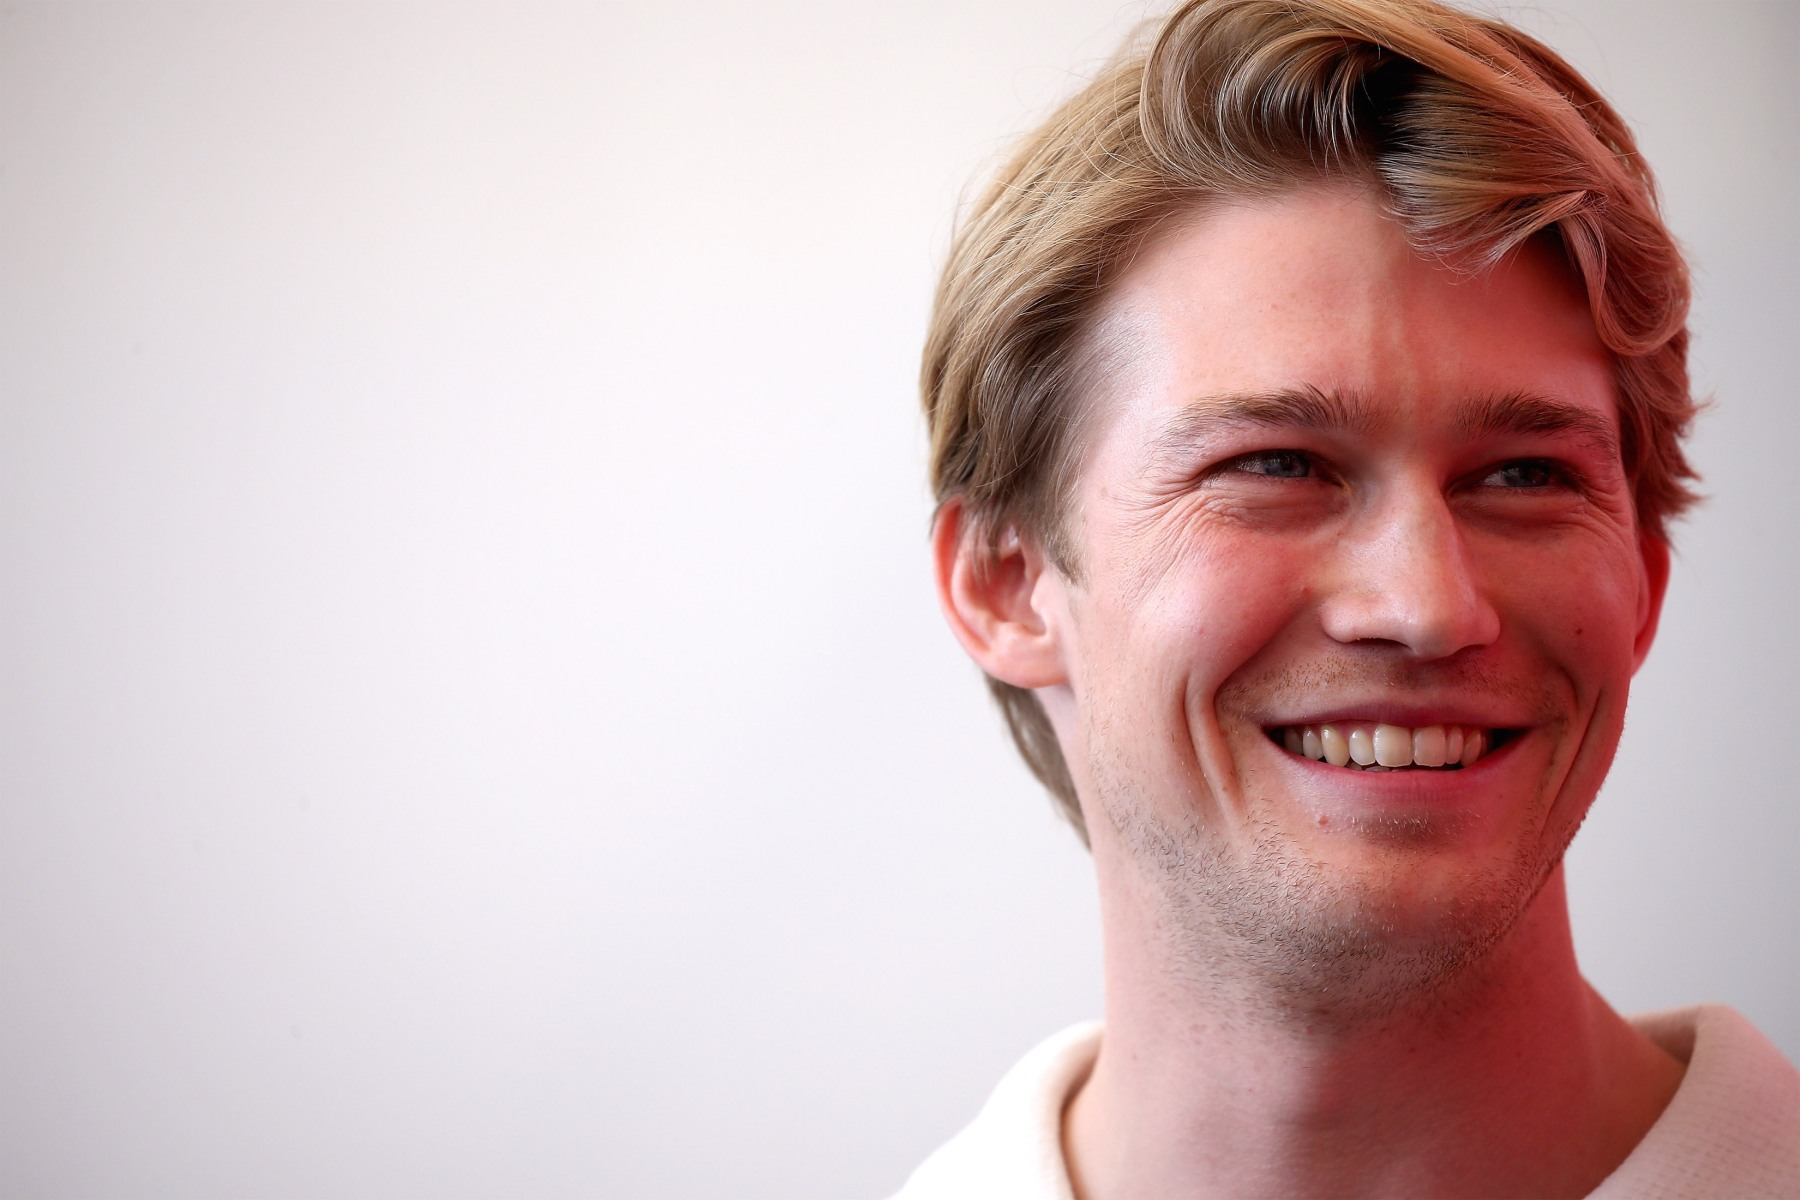 Joe Alwyn attends 'The Favourite' photocall during the 75th Venice Film Festival at Sala Casino on August 30, 2018 in Venice, Italy. Alwyn, who is dating Taylor Swift, is lined up to star in several hotly-anticipated movies this fall. (Photo by Franco Origlia/Getty Images)